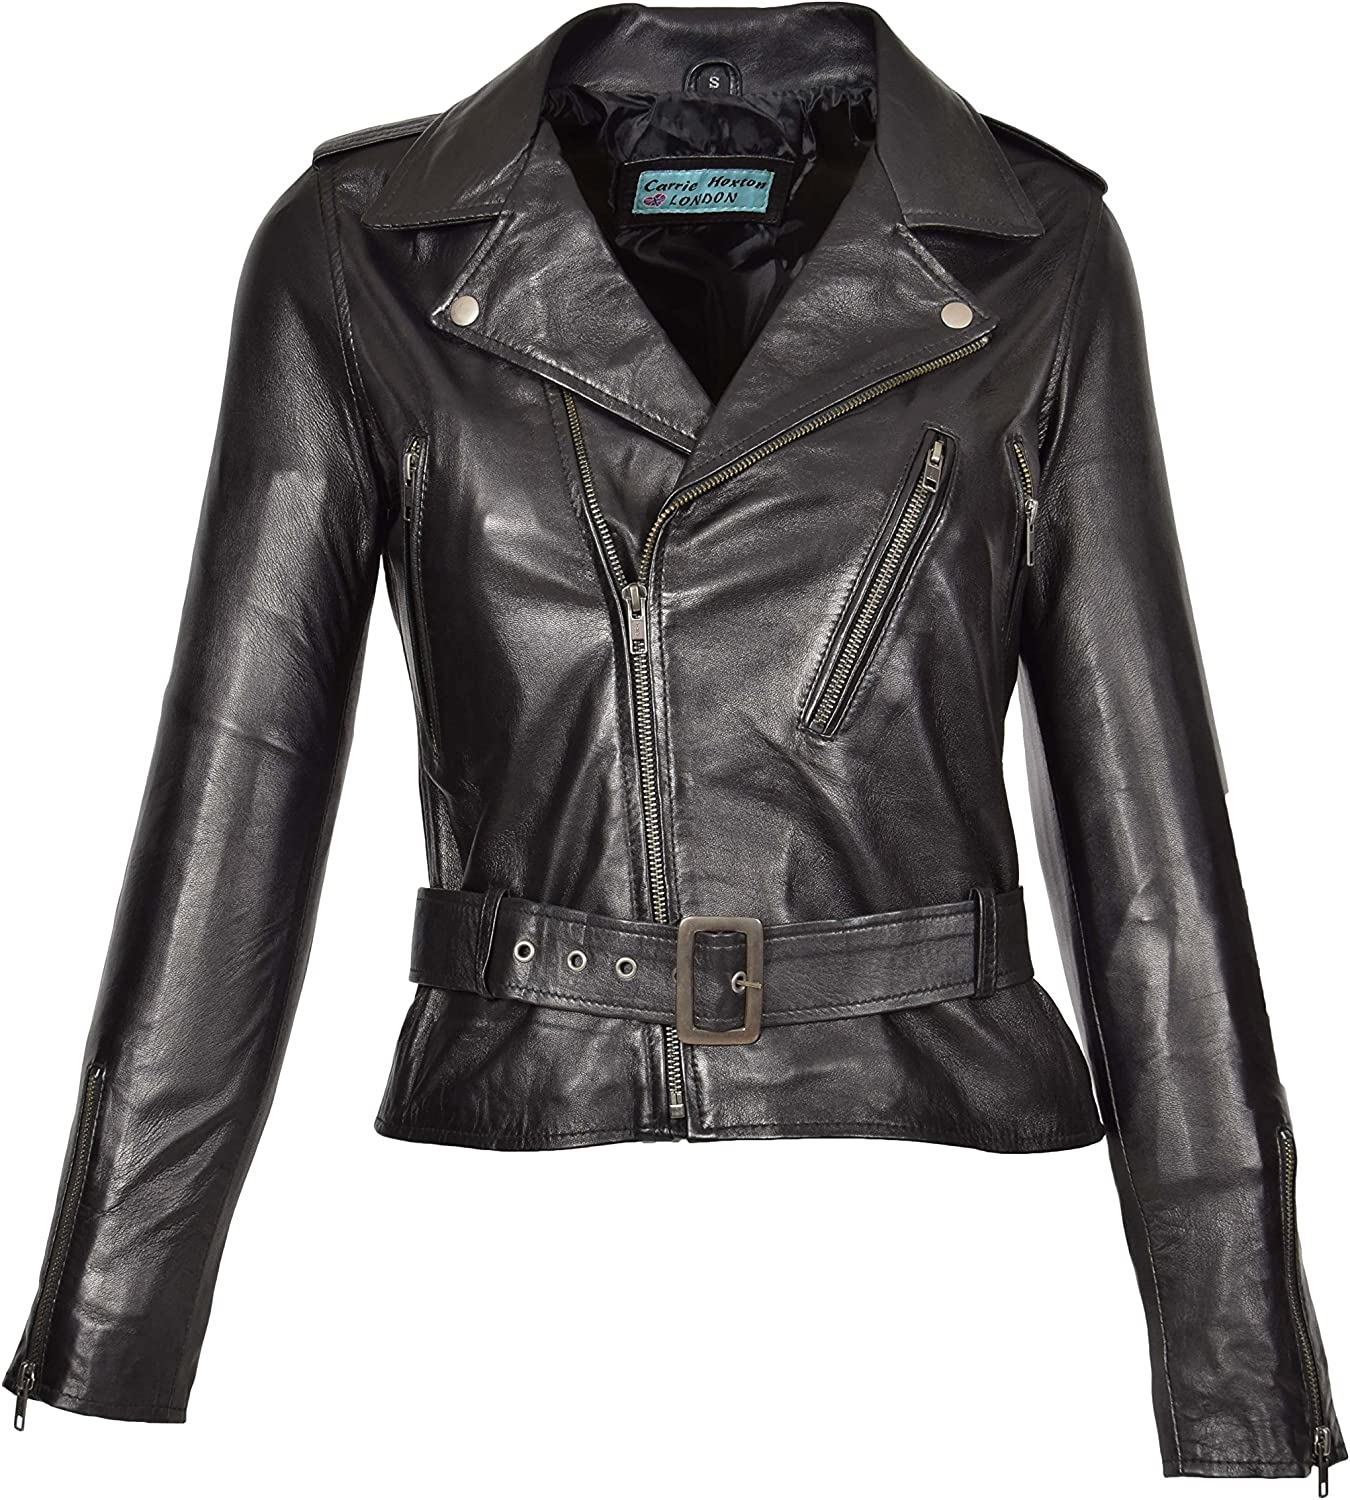 A1 FASHION GOODS Ladies Soft Leather Fitted Biker Jacket Womens Funky Wanda Black